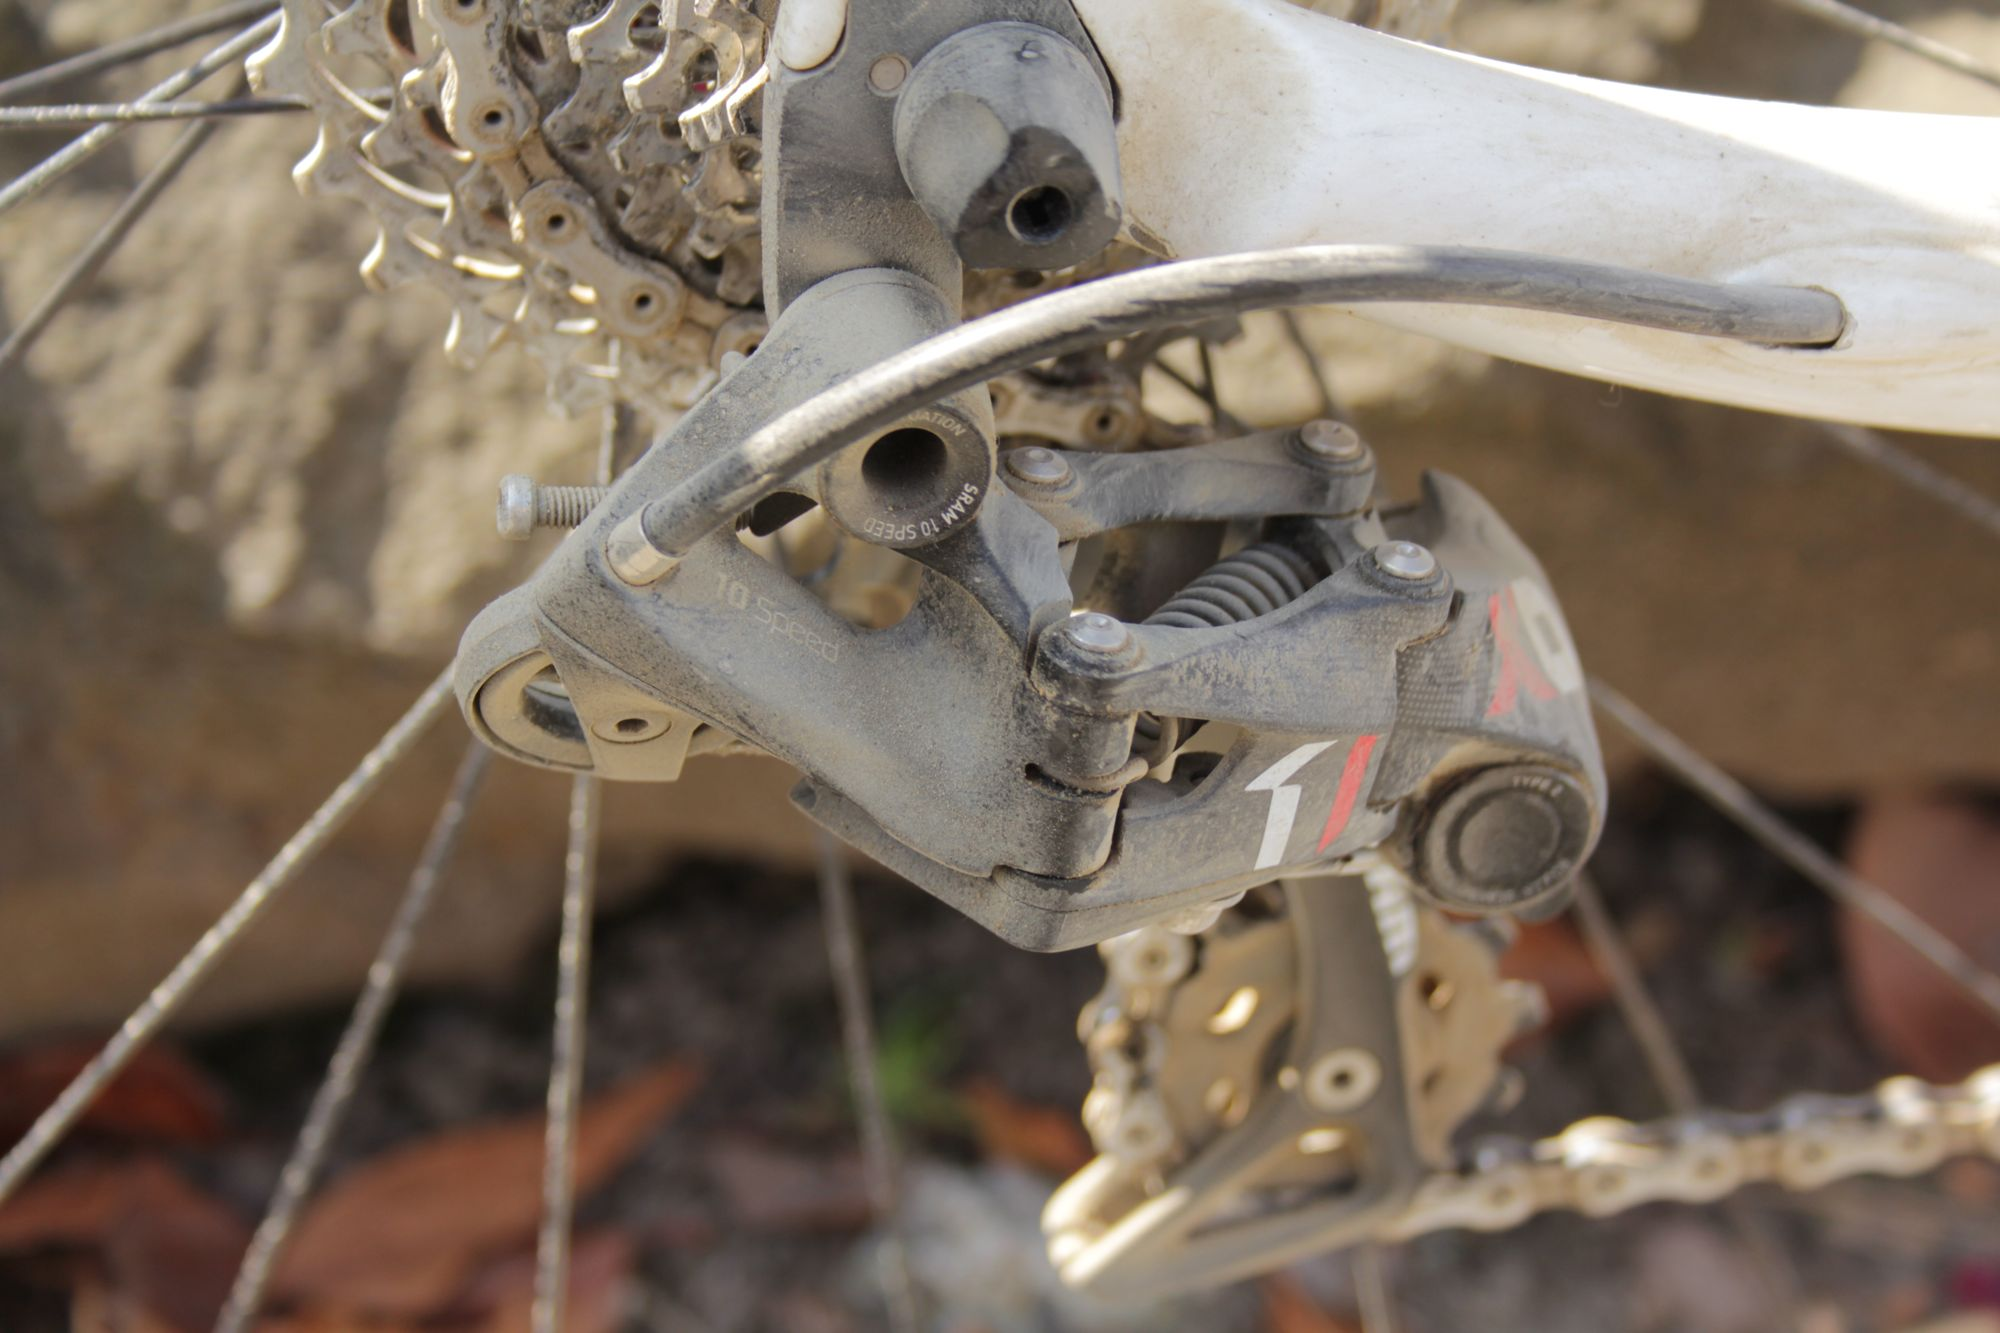 SRAM X01 DH/10sp derailleur on Redline Conquest CX